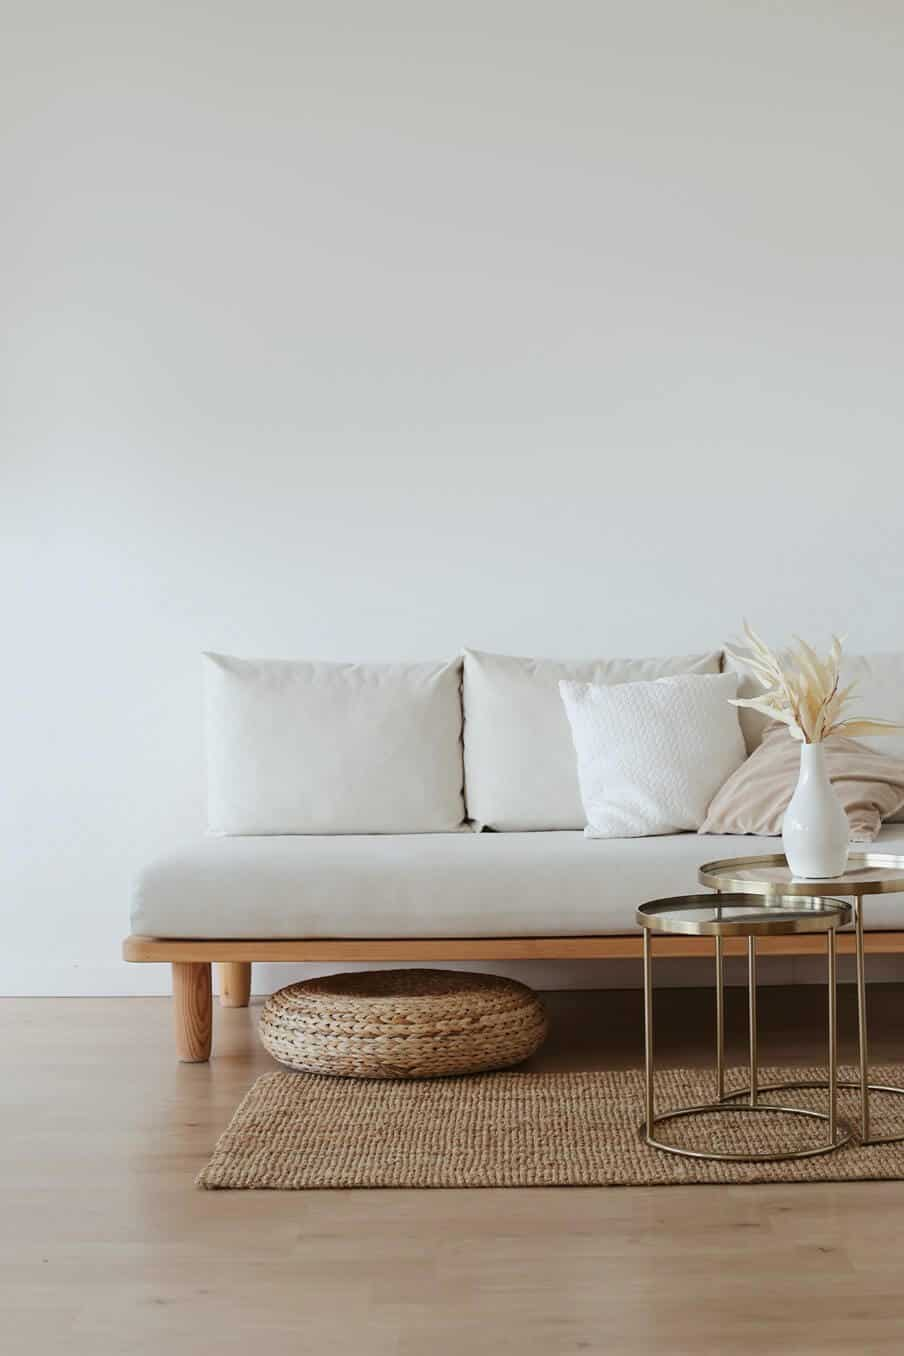 A simple timber framed sofa and cushions sitting on a wooden floor